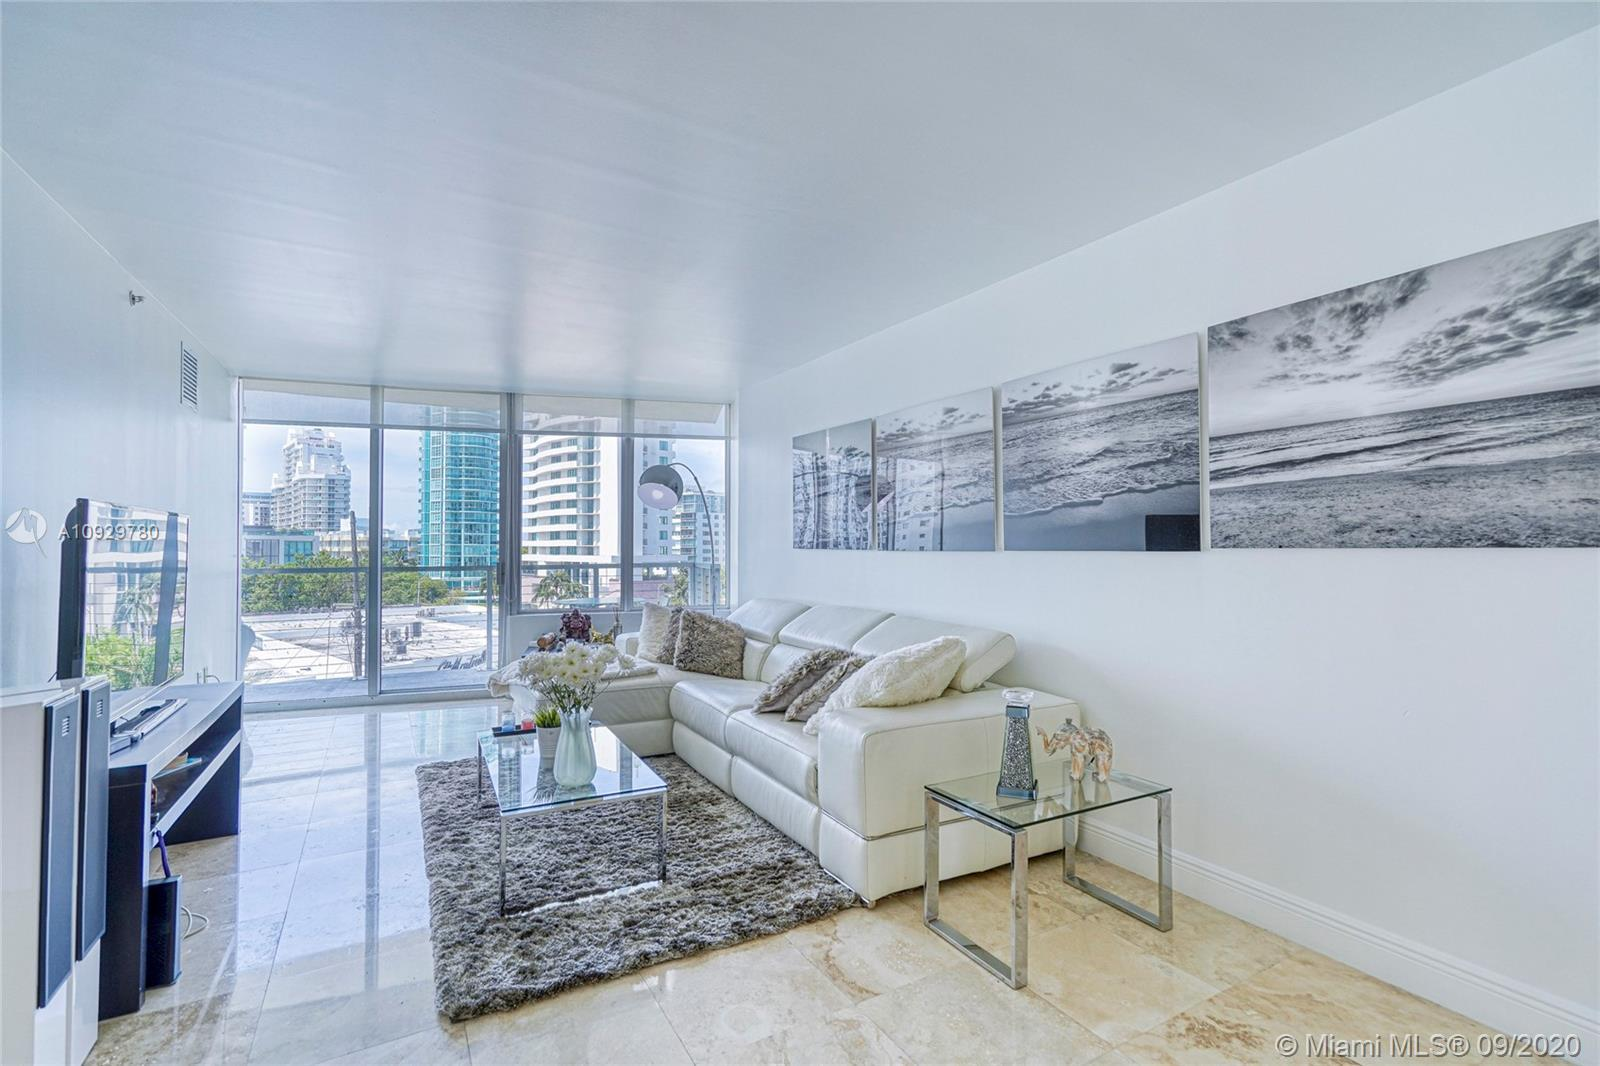 AMAZING CORNER UNIT VERY BRIGHT AND SPACIOUS IN A BEAUTIFUL BOUTIQUE BUILDING IN MIAMI BEACH. GREAT